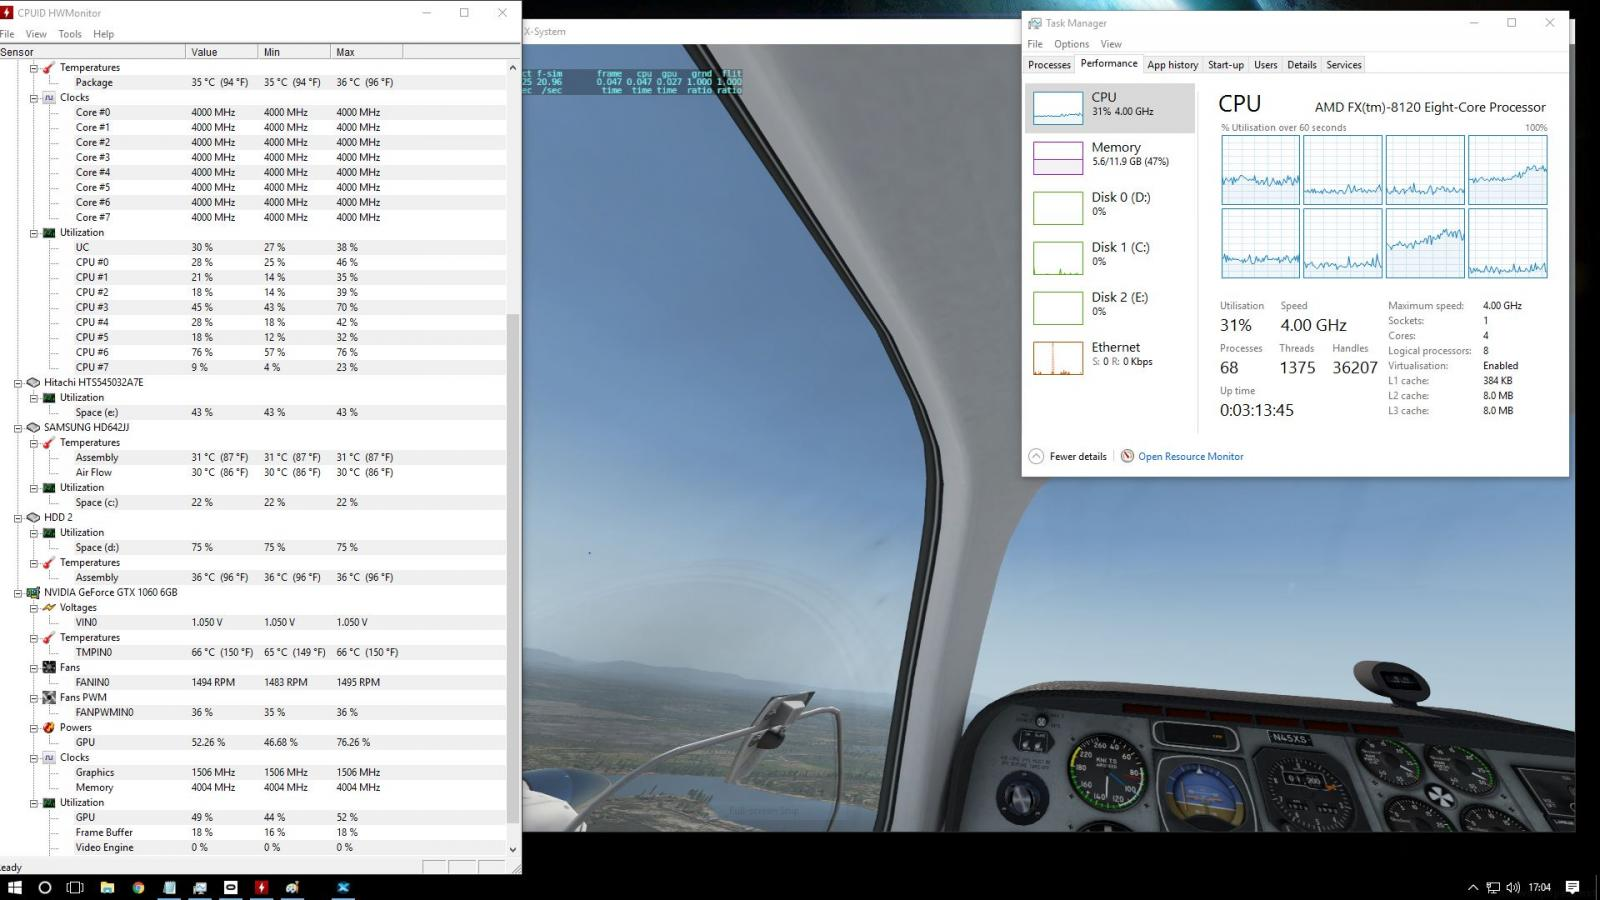 VR Headsets - XP11: Rendering Options - FPS - Hardware Settings - X